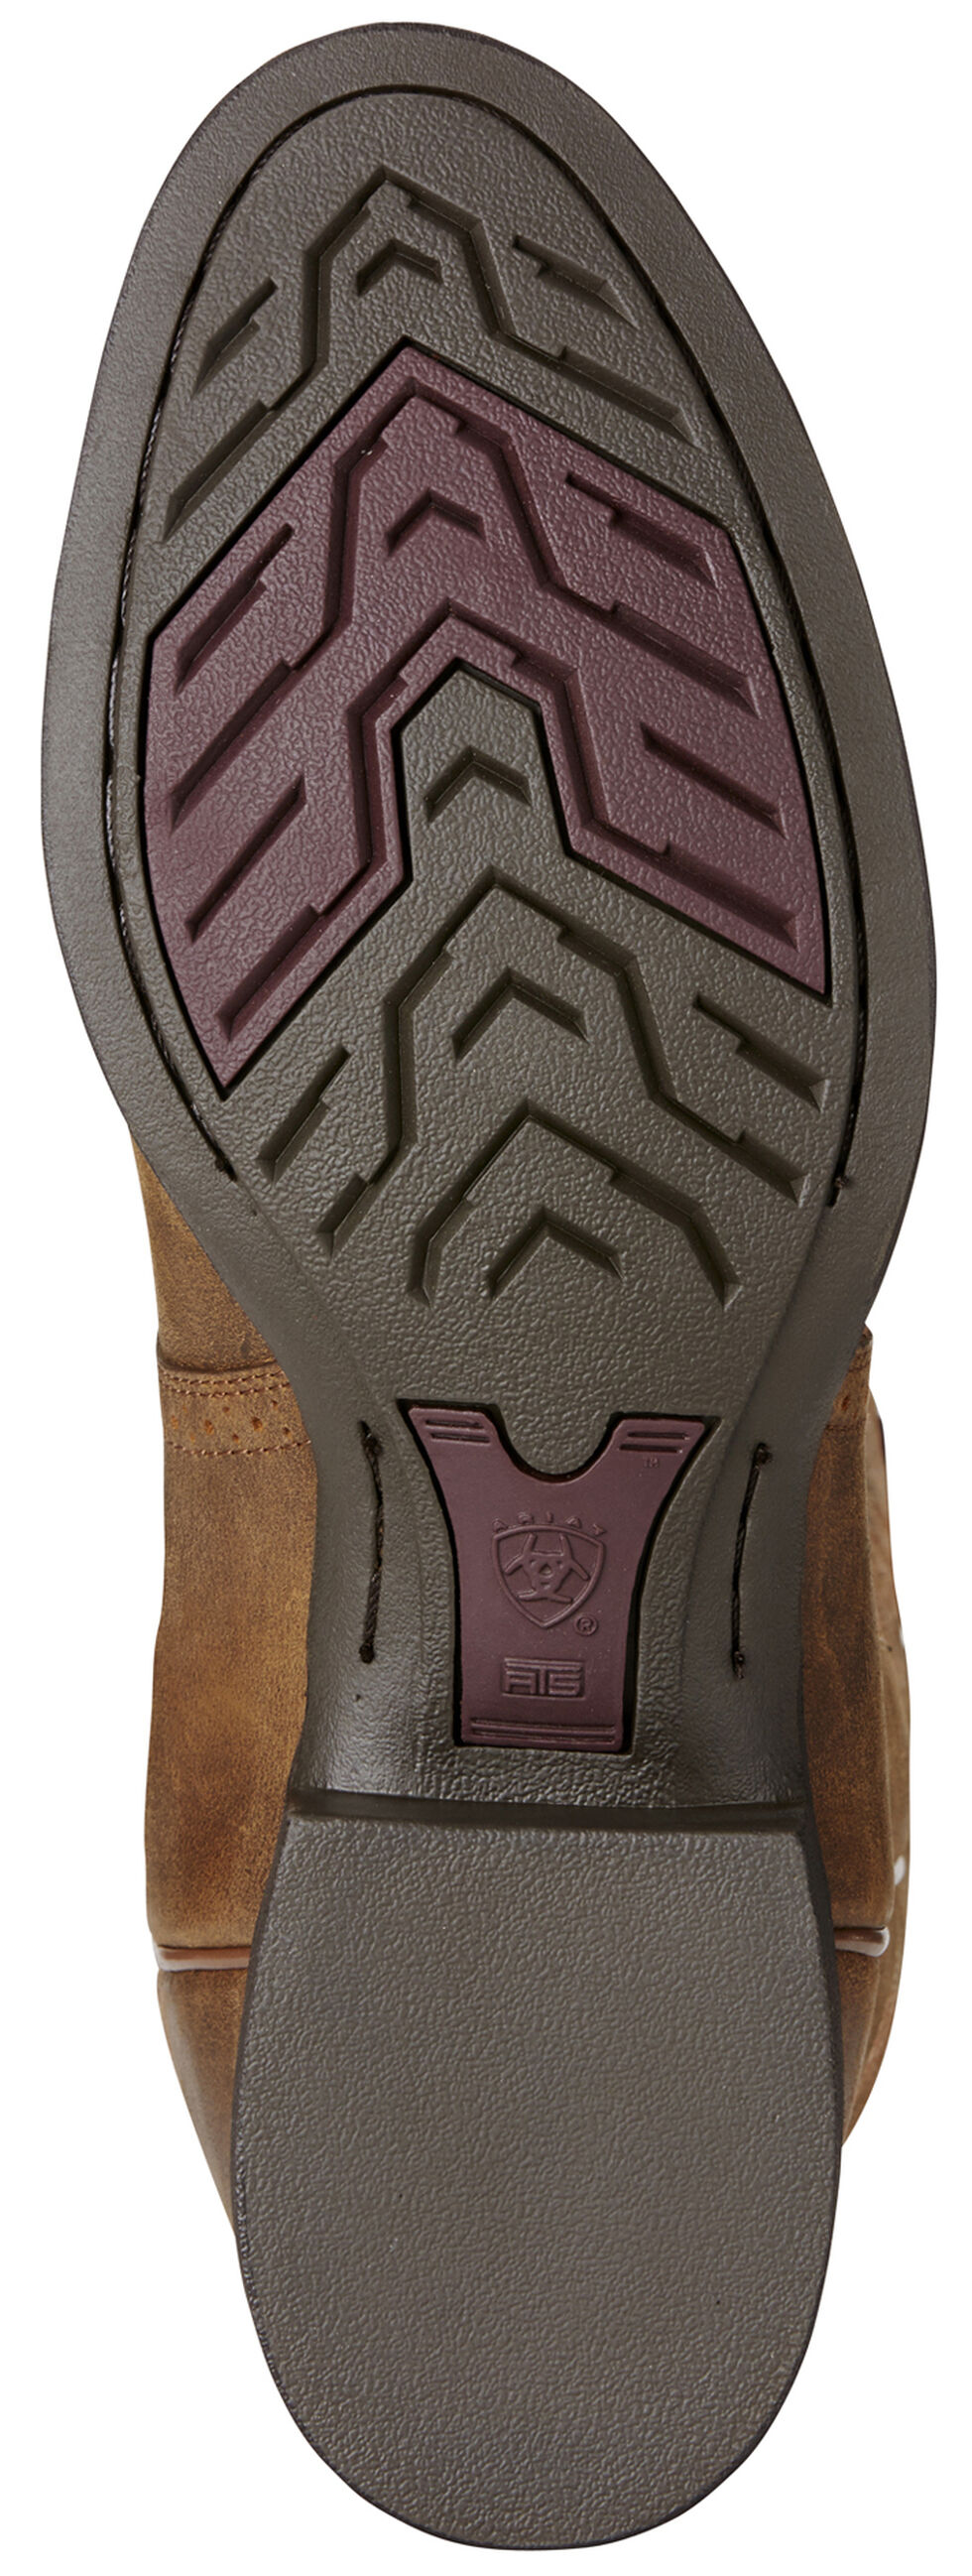 Ariat Men's Brown Heritage Hackamore Boots - Round Toe, Brown, hi-res